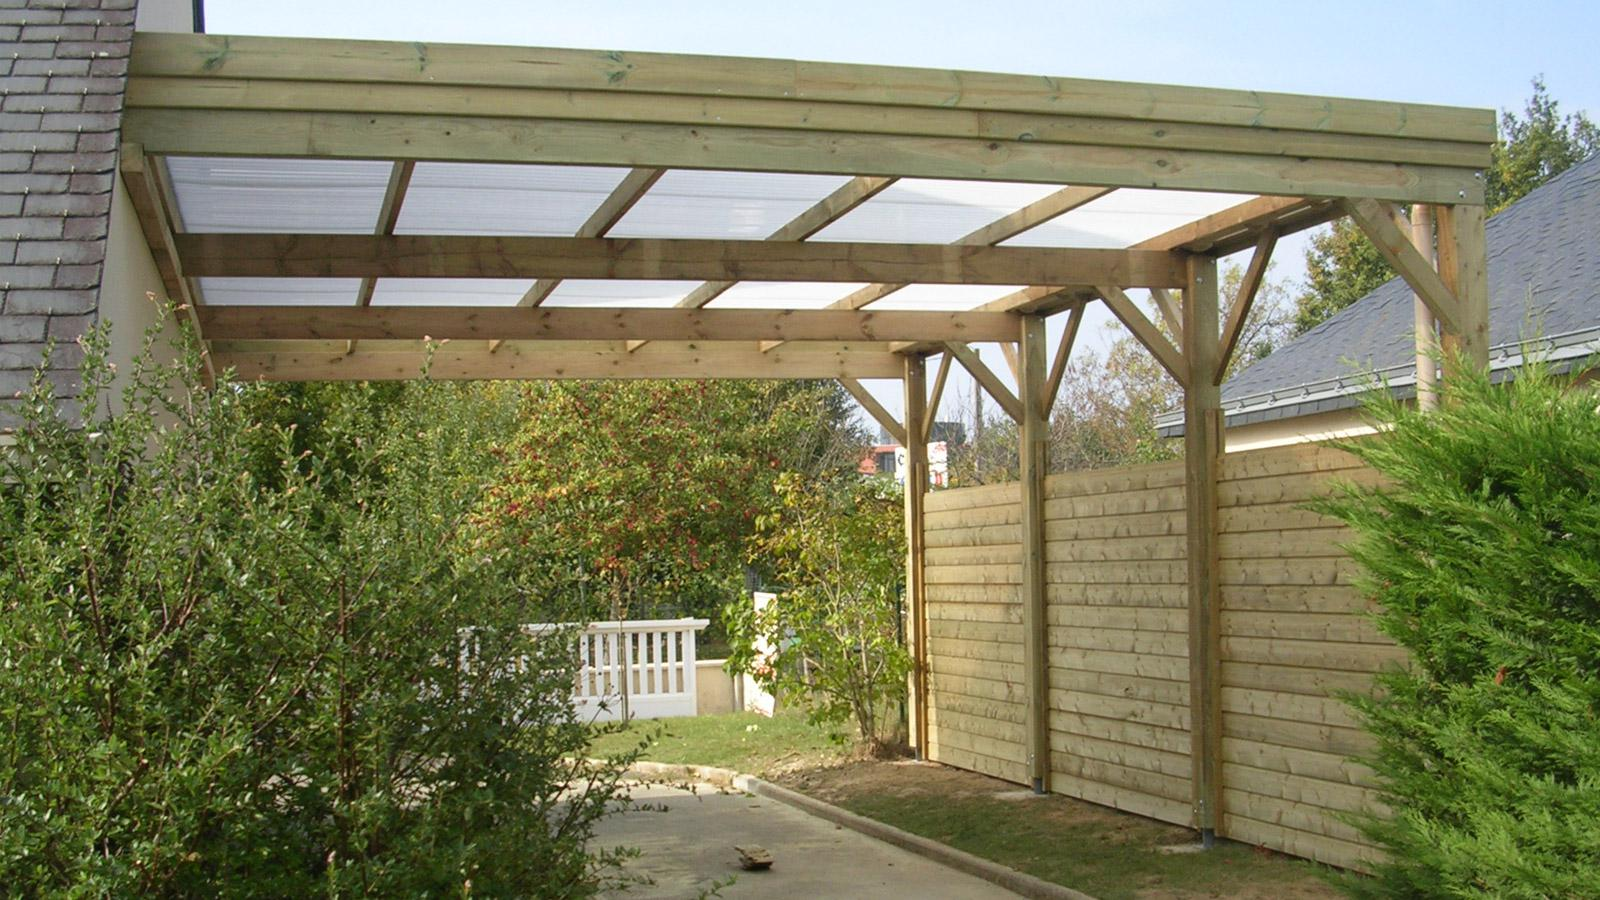 exemple d un carport fait maison ouvert en bois plans maisons. Black Bedroom Furniture Sets. Home Design Ideas